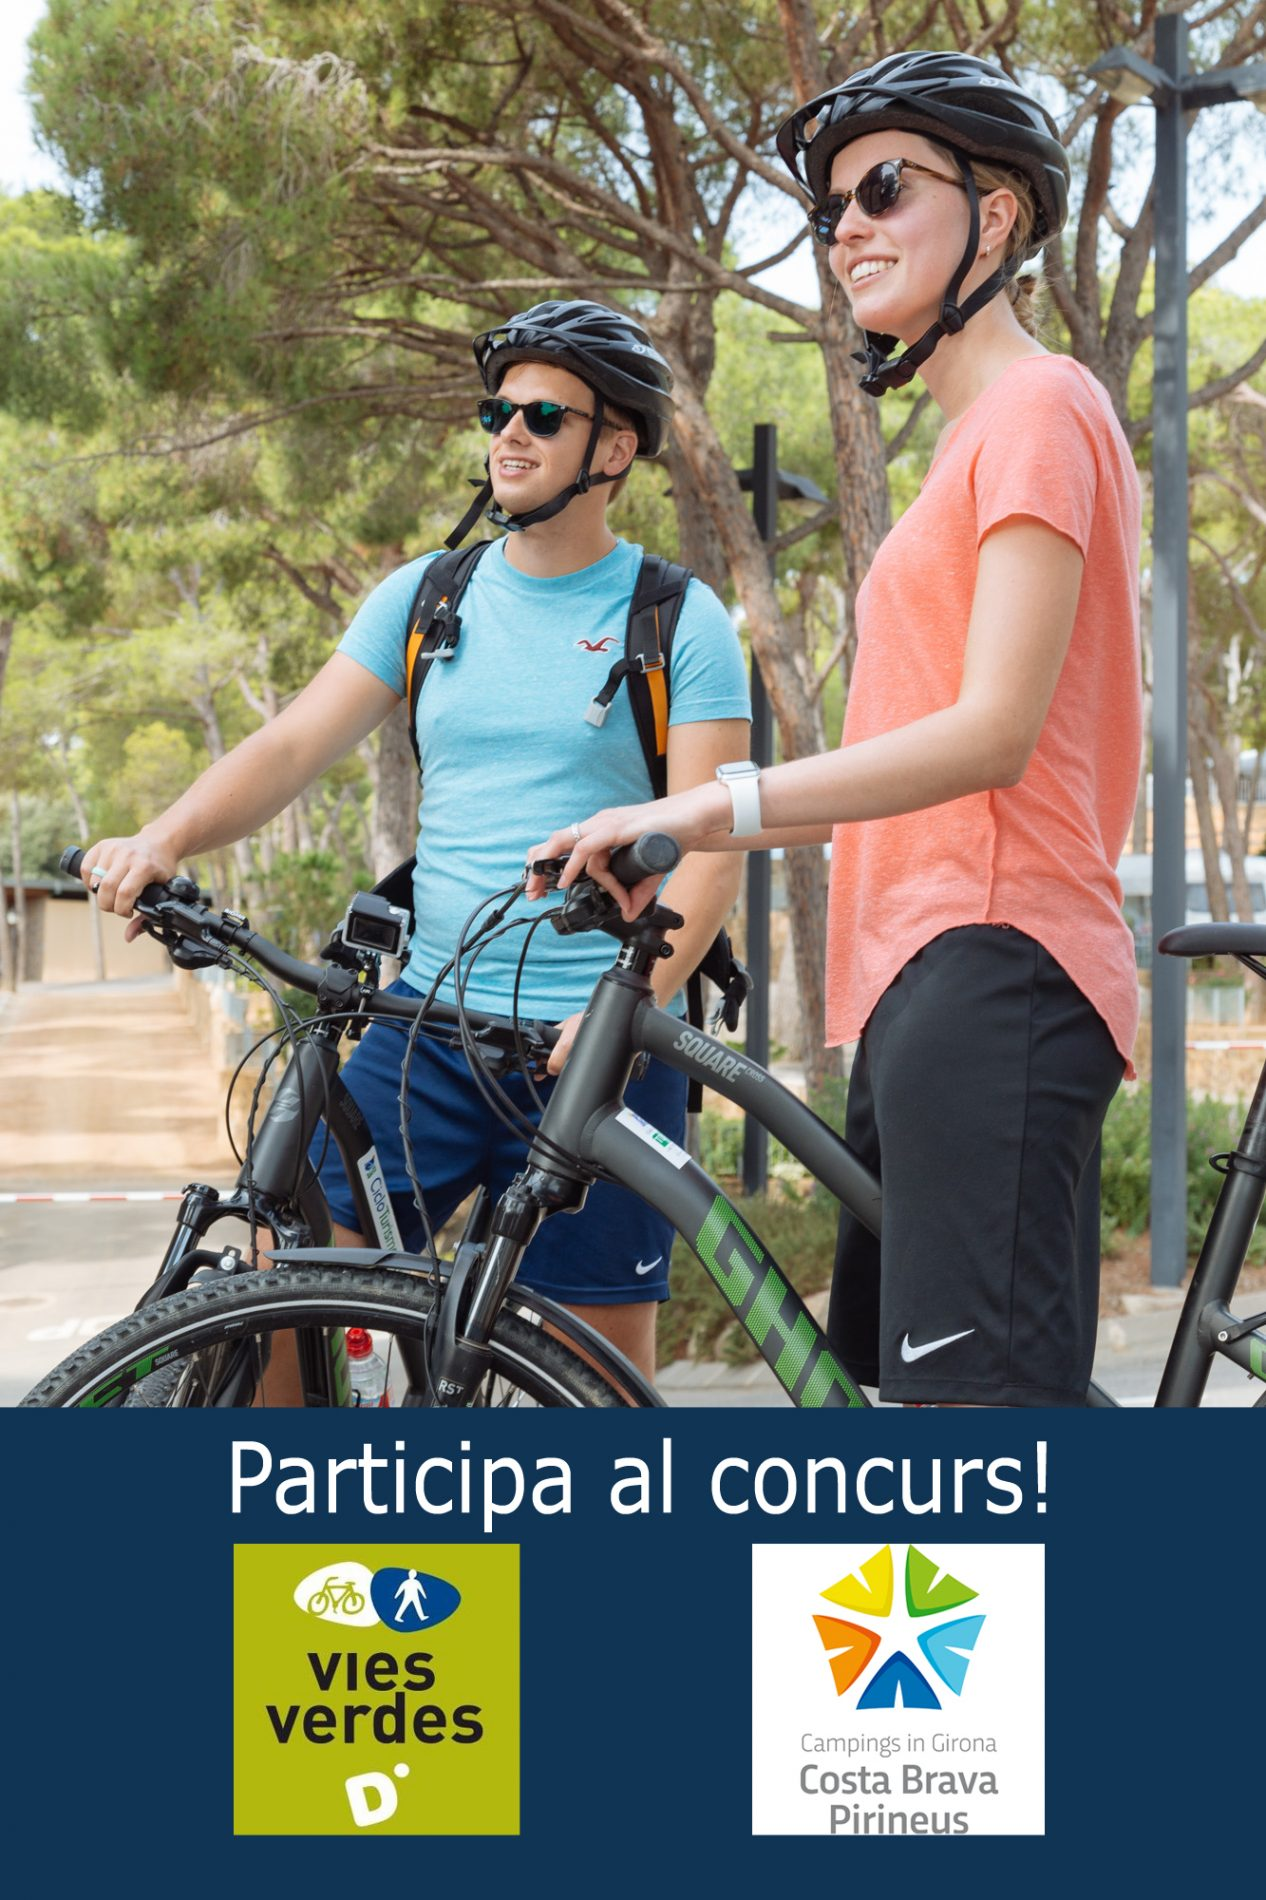 concurs càmpings bed and bike